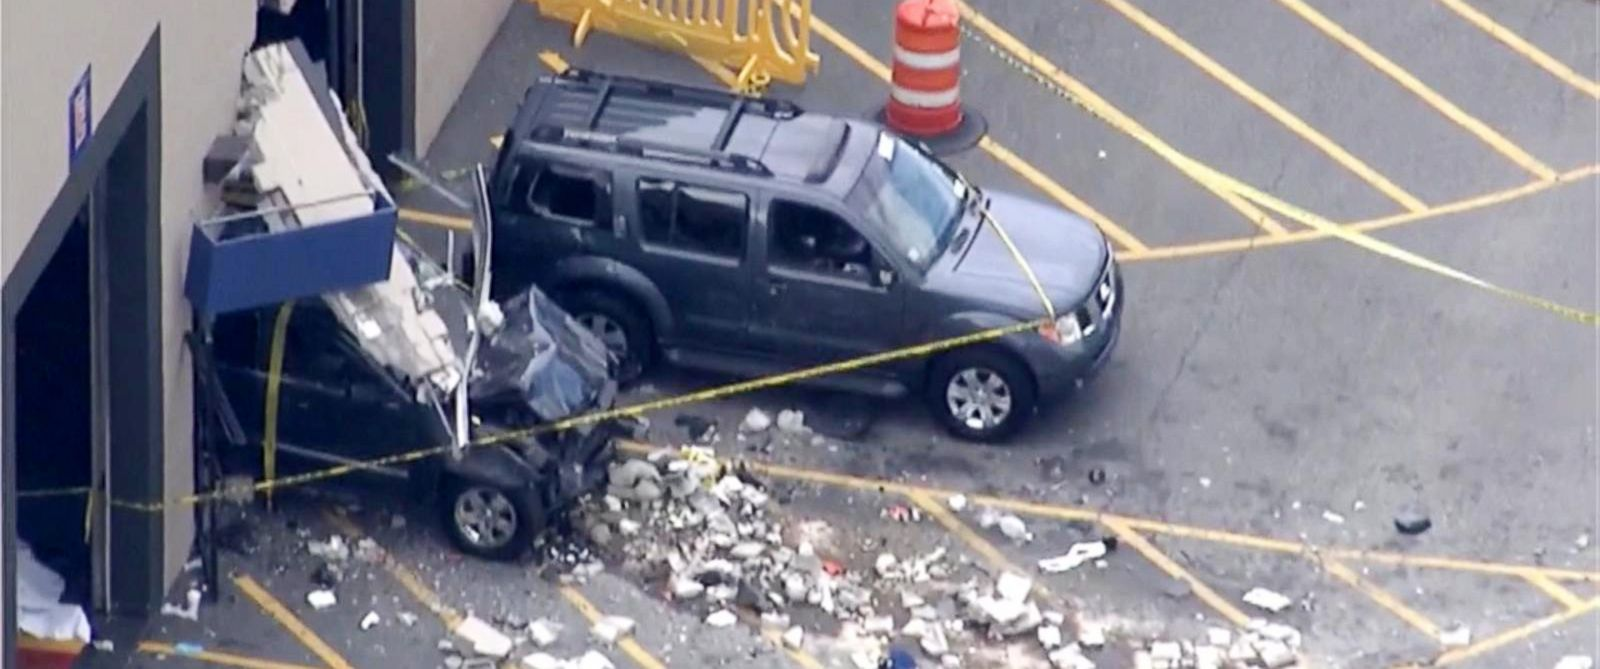 3 dead 6 remain hospitalized from apparent accidental car crash at massachusetts auto auction. Black Bedroom Furniture Sets. Home Design Ideas